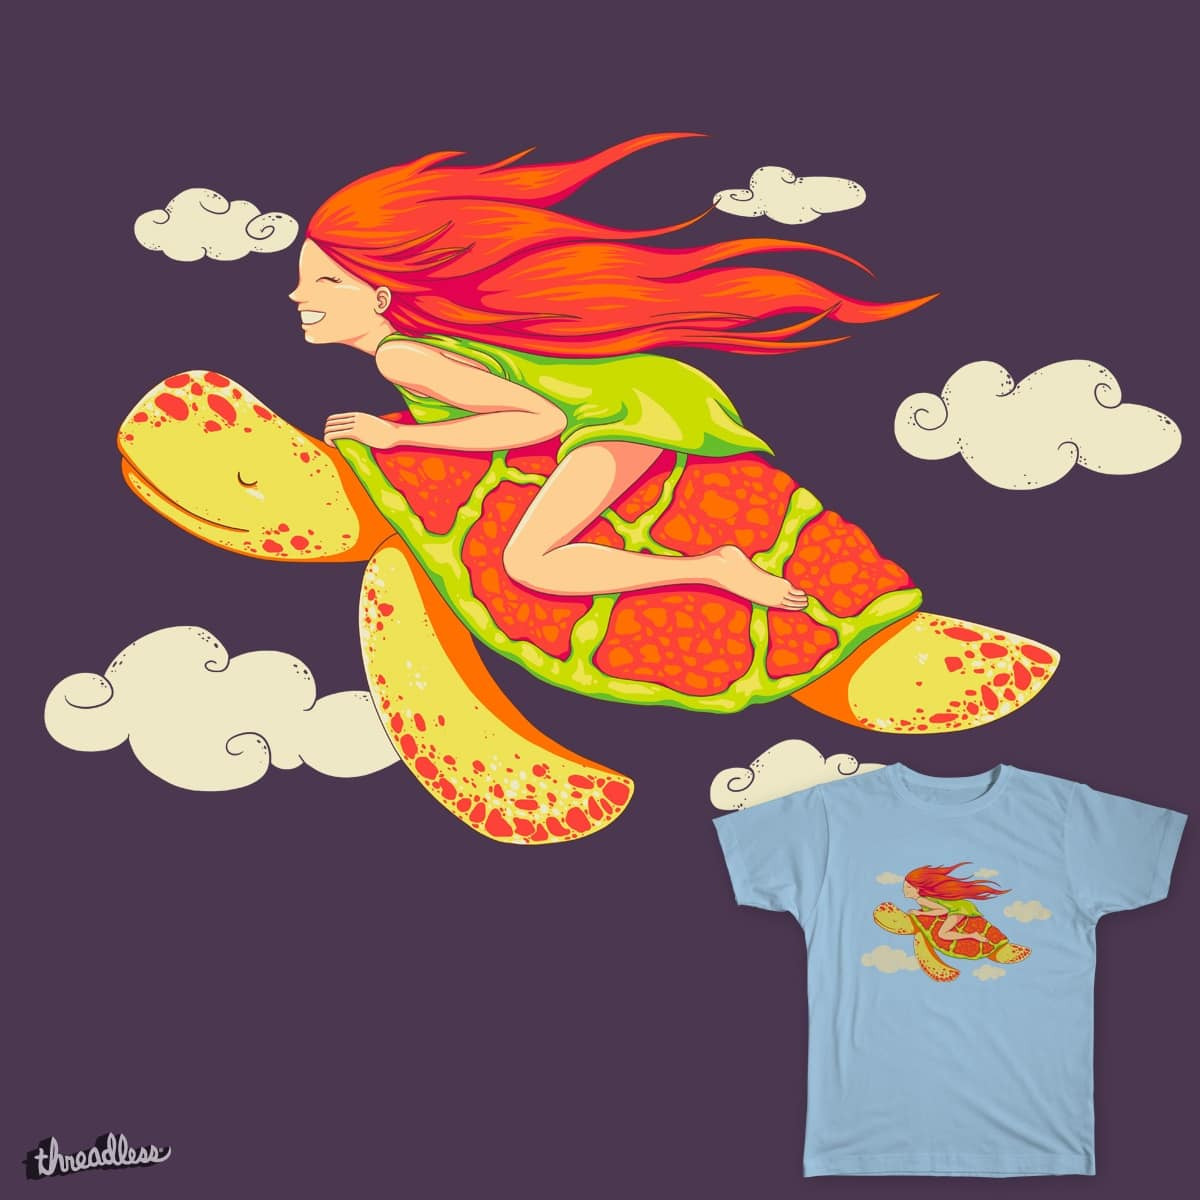 The Girl and the Turtle by spookylili on Threadless